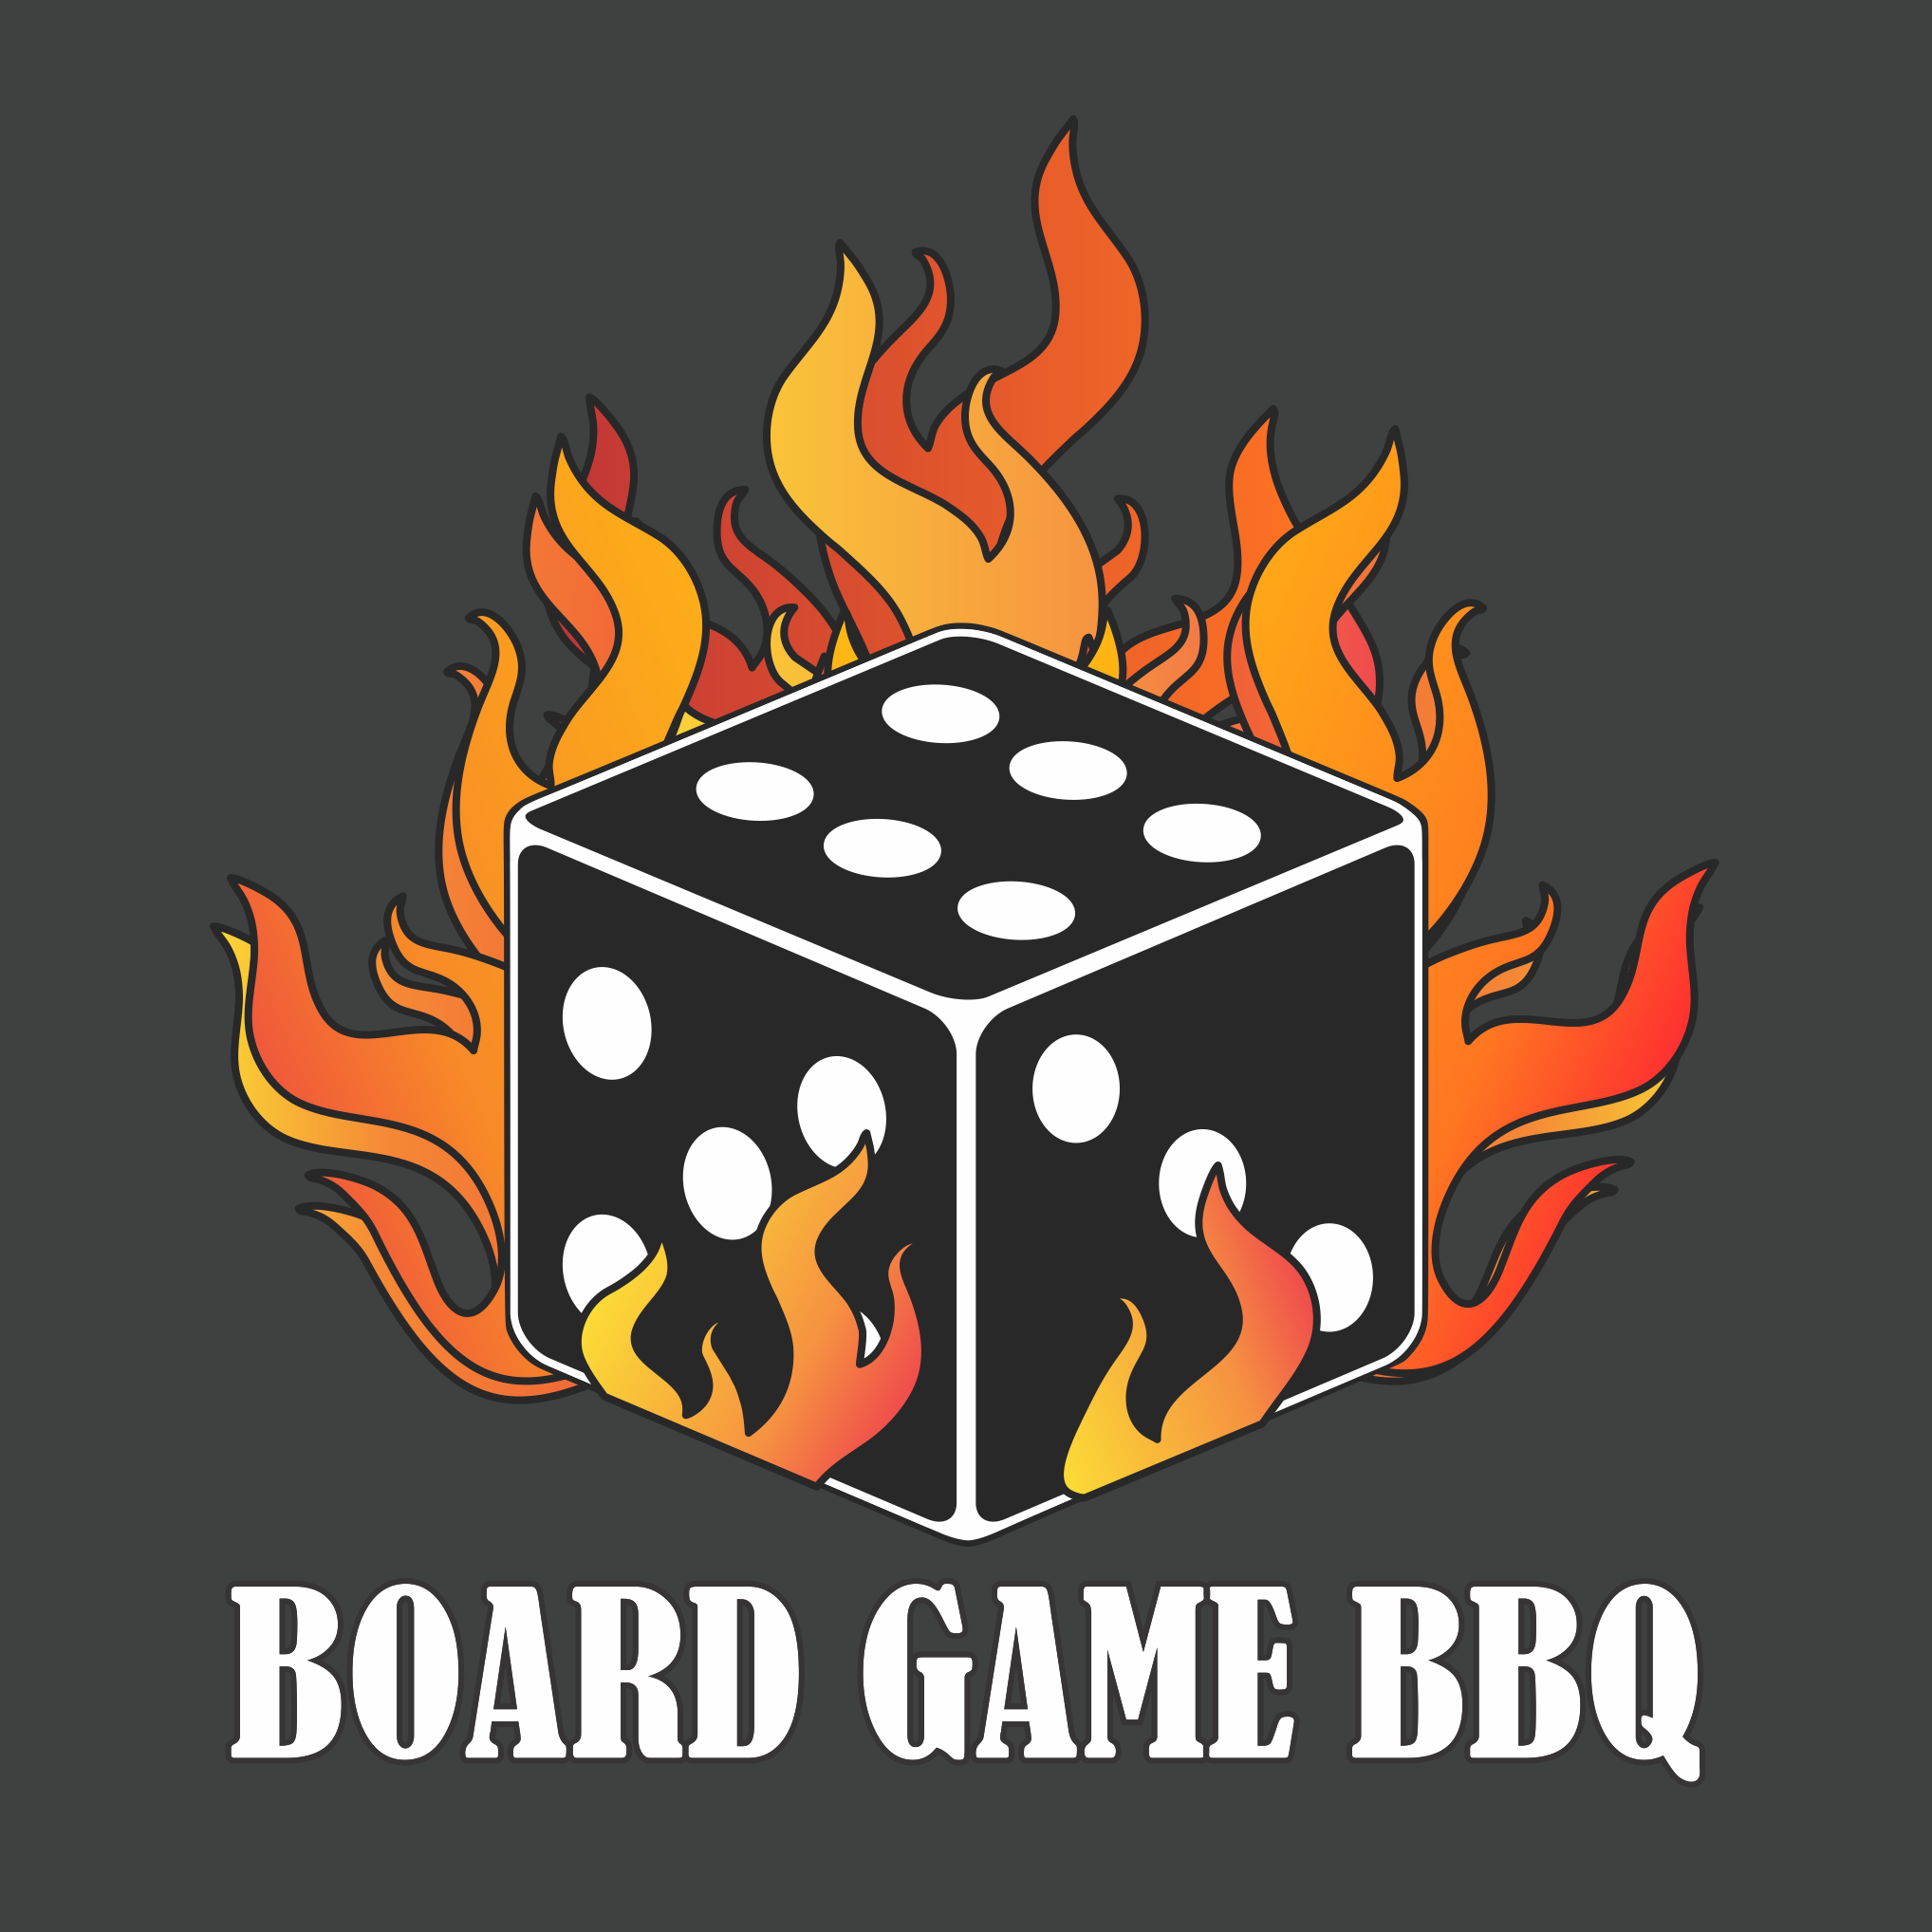 Episode 14: War Chest, Call To Adventure, Bob's Your Uncle